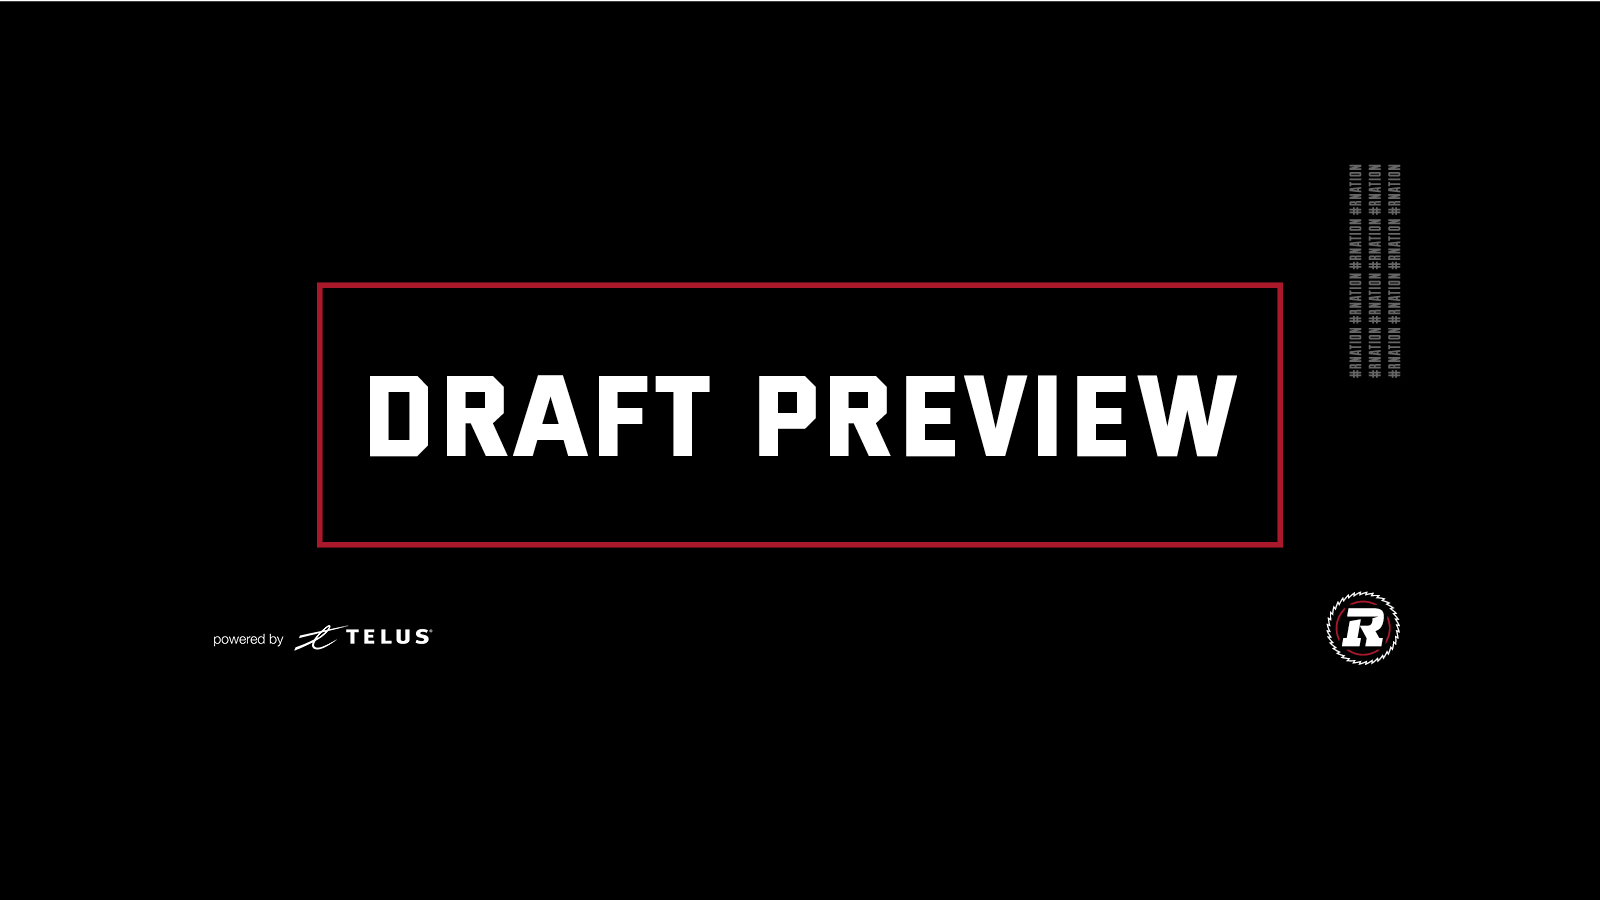 Ottawa REDBLACKS set to pick 6th overall in Tuesday's CFL Draft